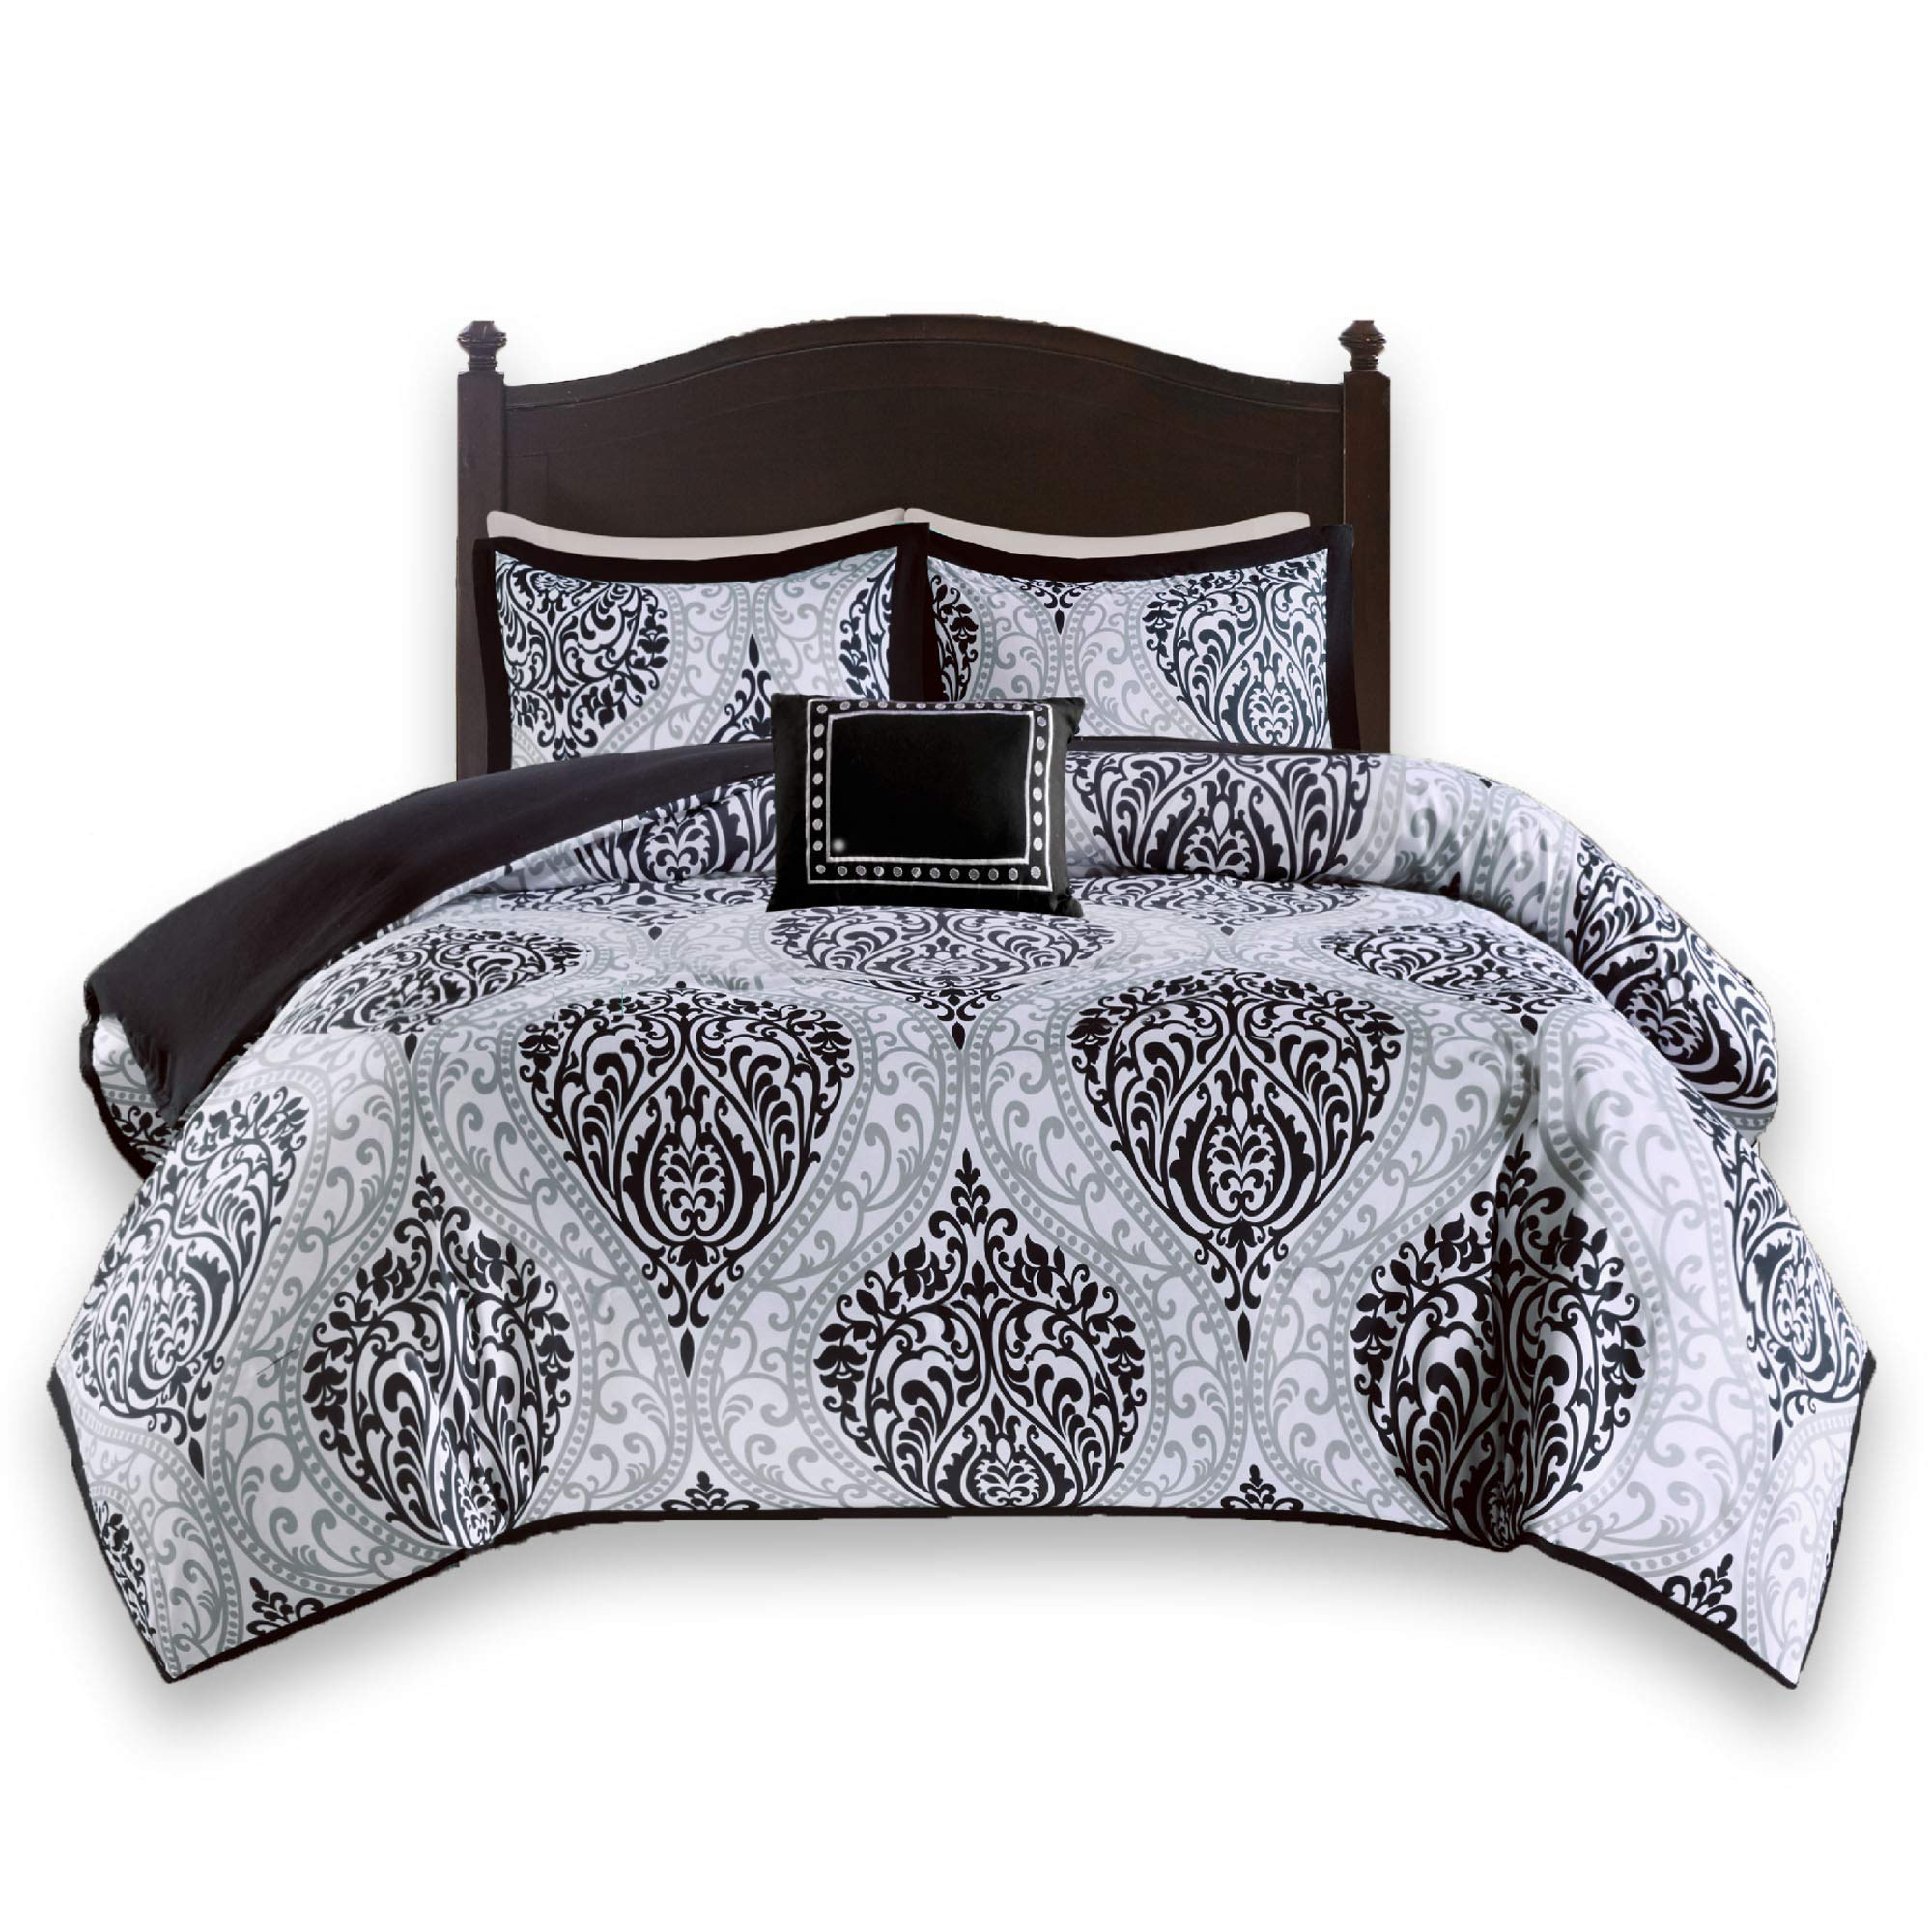 Comfort Spaces - Coco Comforter Set - 4 Piece - Black and White - Printed Damask Pattern - Full/Queen Size, Includes 1 Comforter, 2 Shams, 1 Decorative Pillow